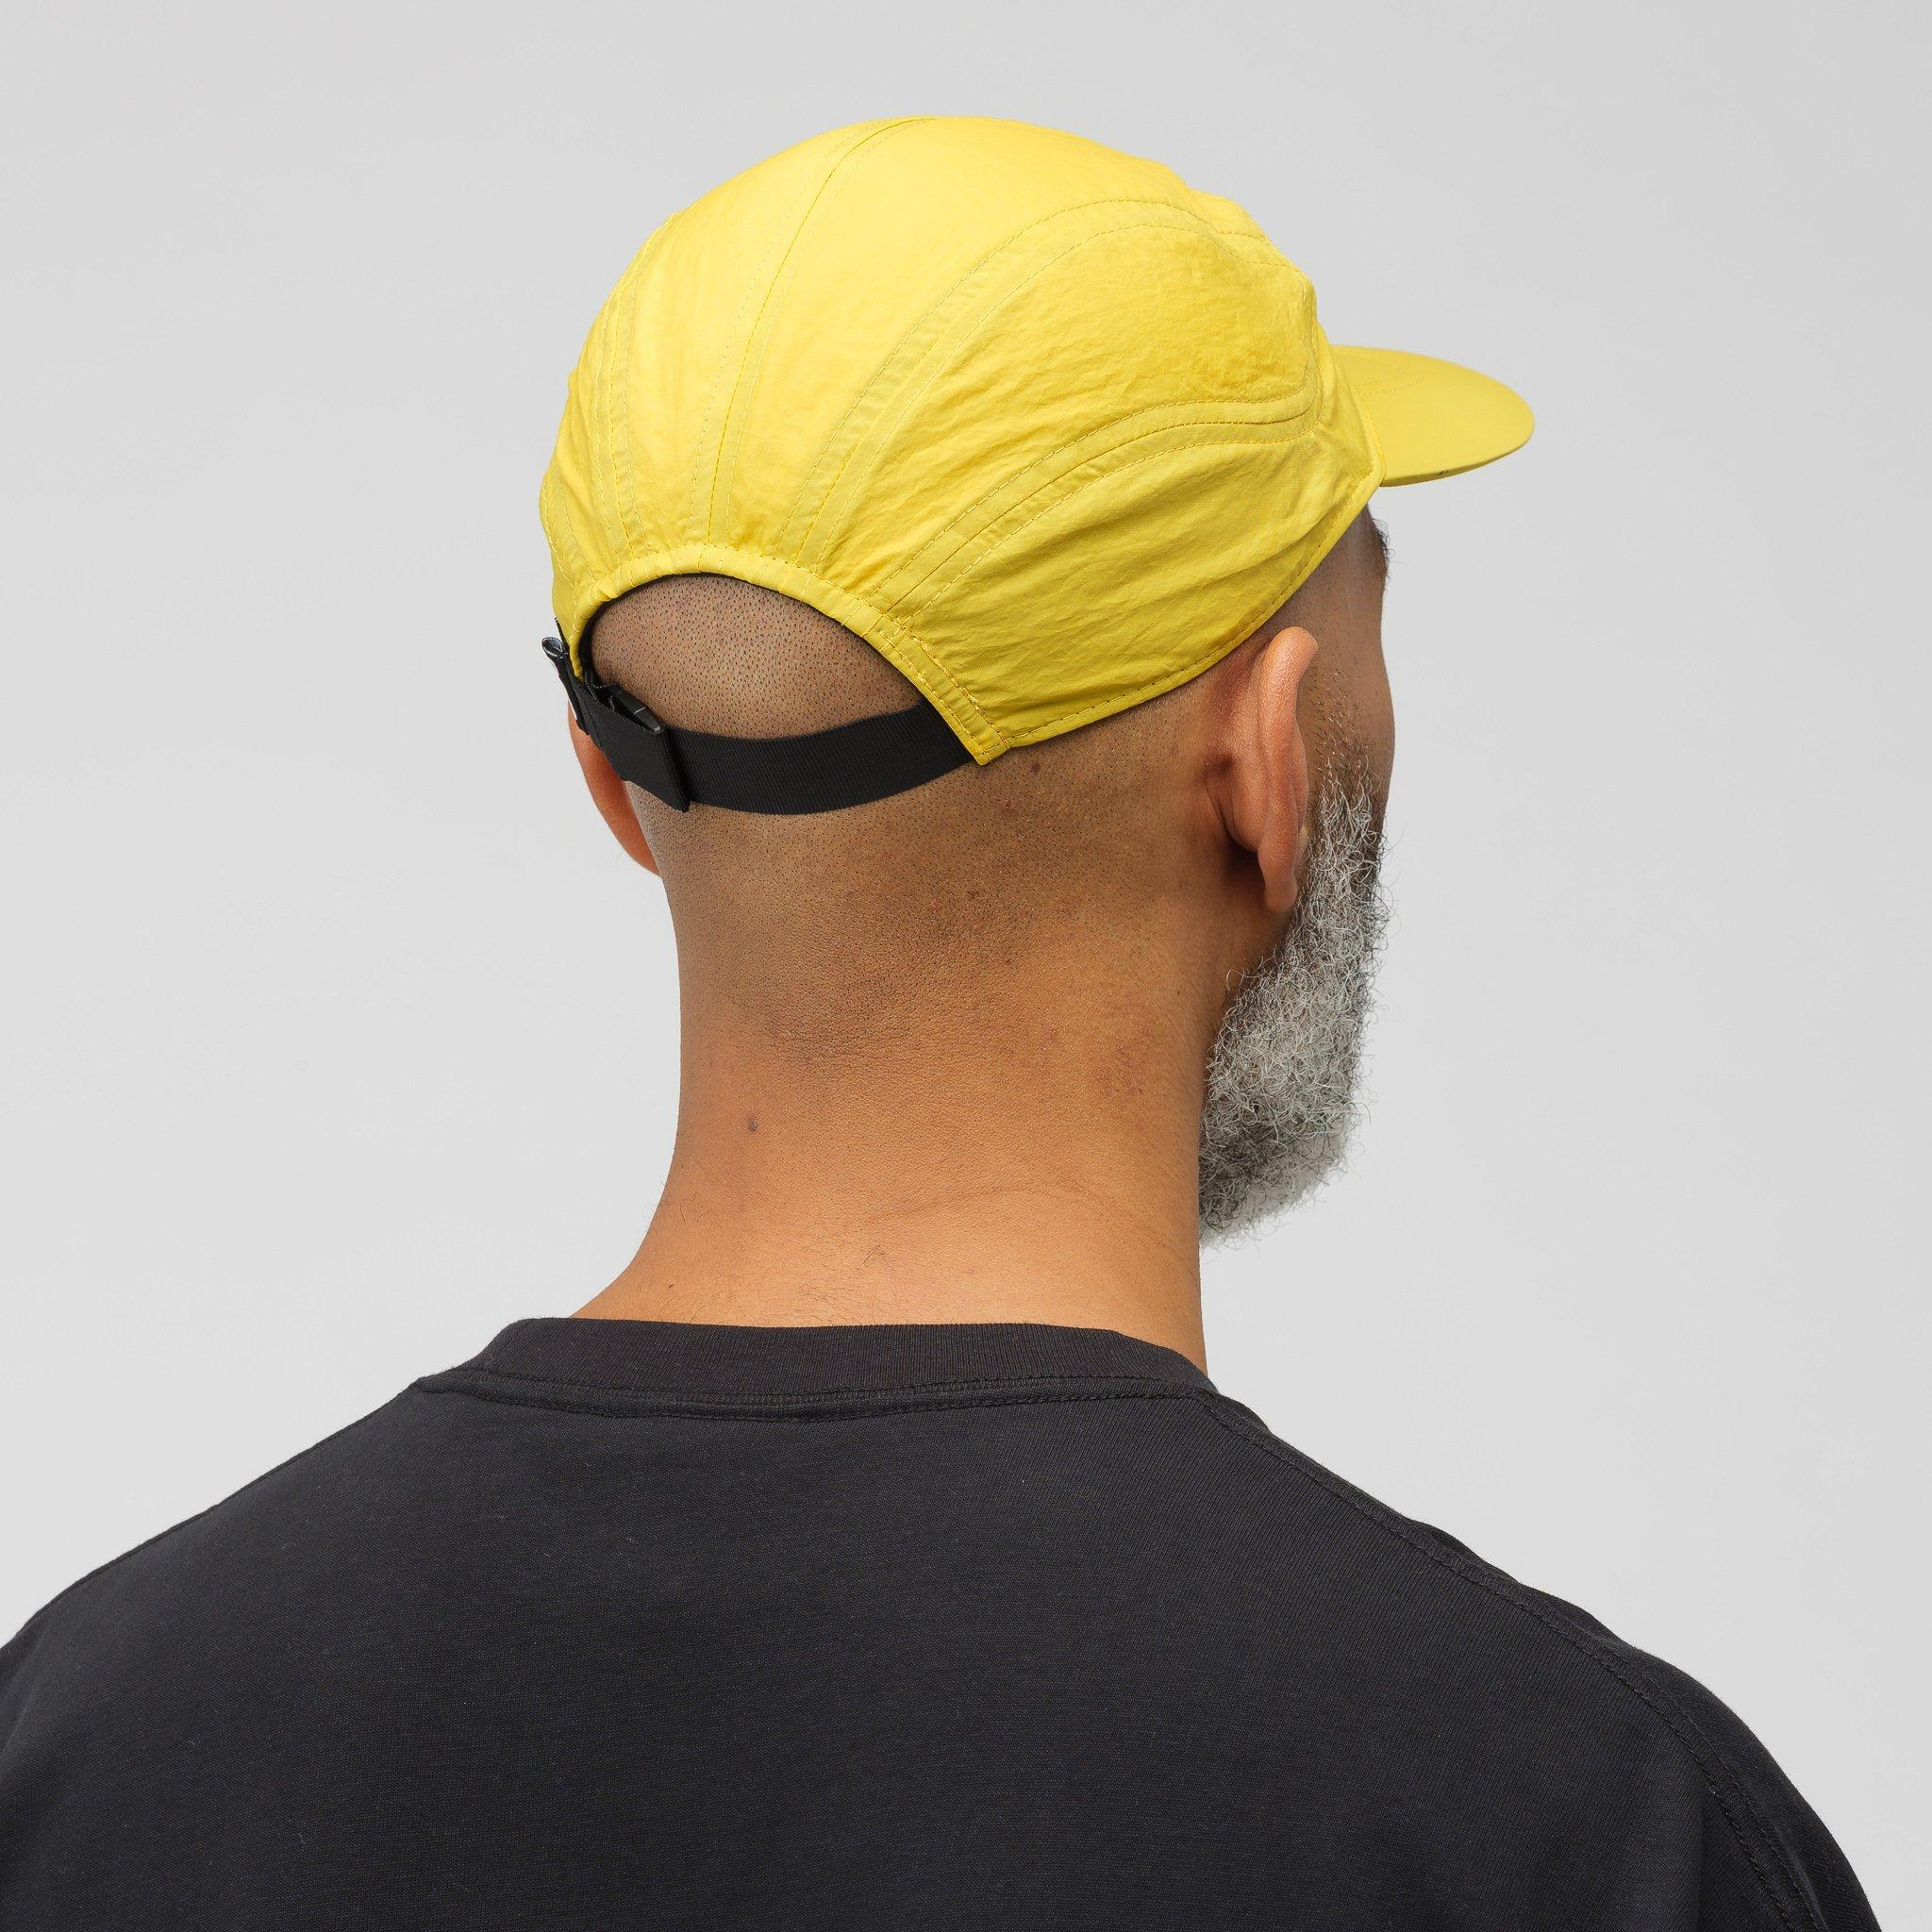 reputable site 2fe5c 45119 Nike Acg Tailwind Cap In Amarillo black in Black for Men - Lyst